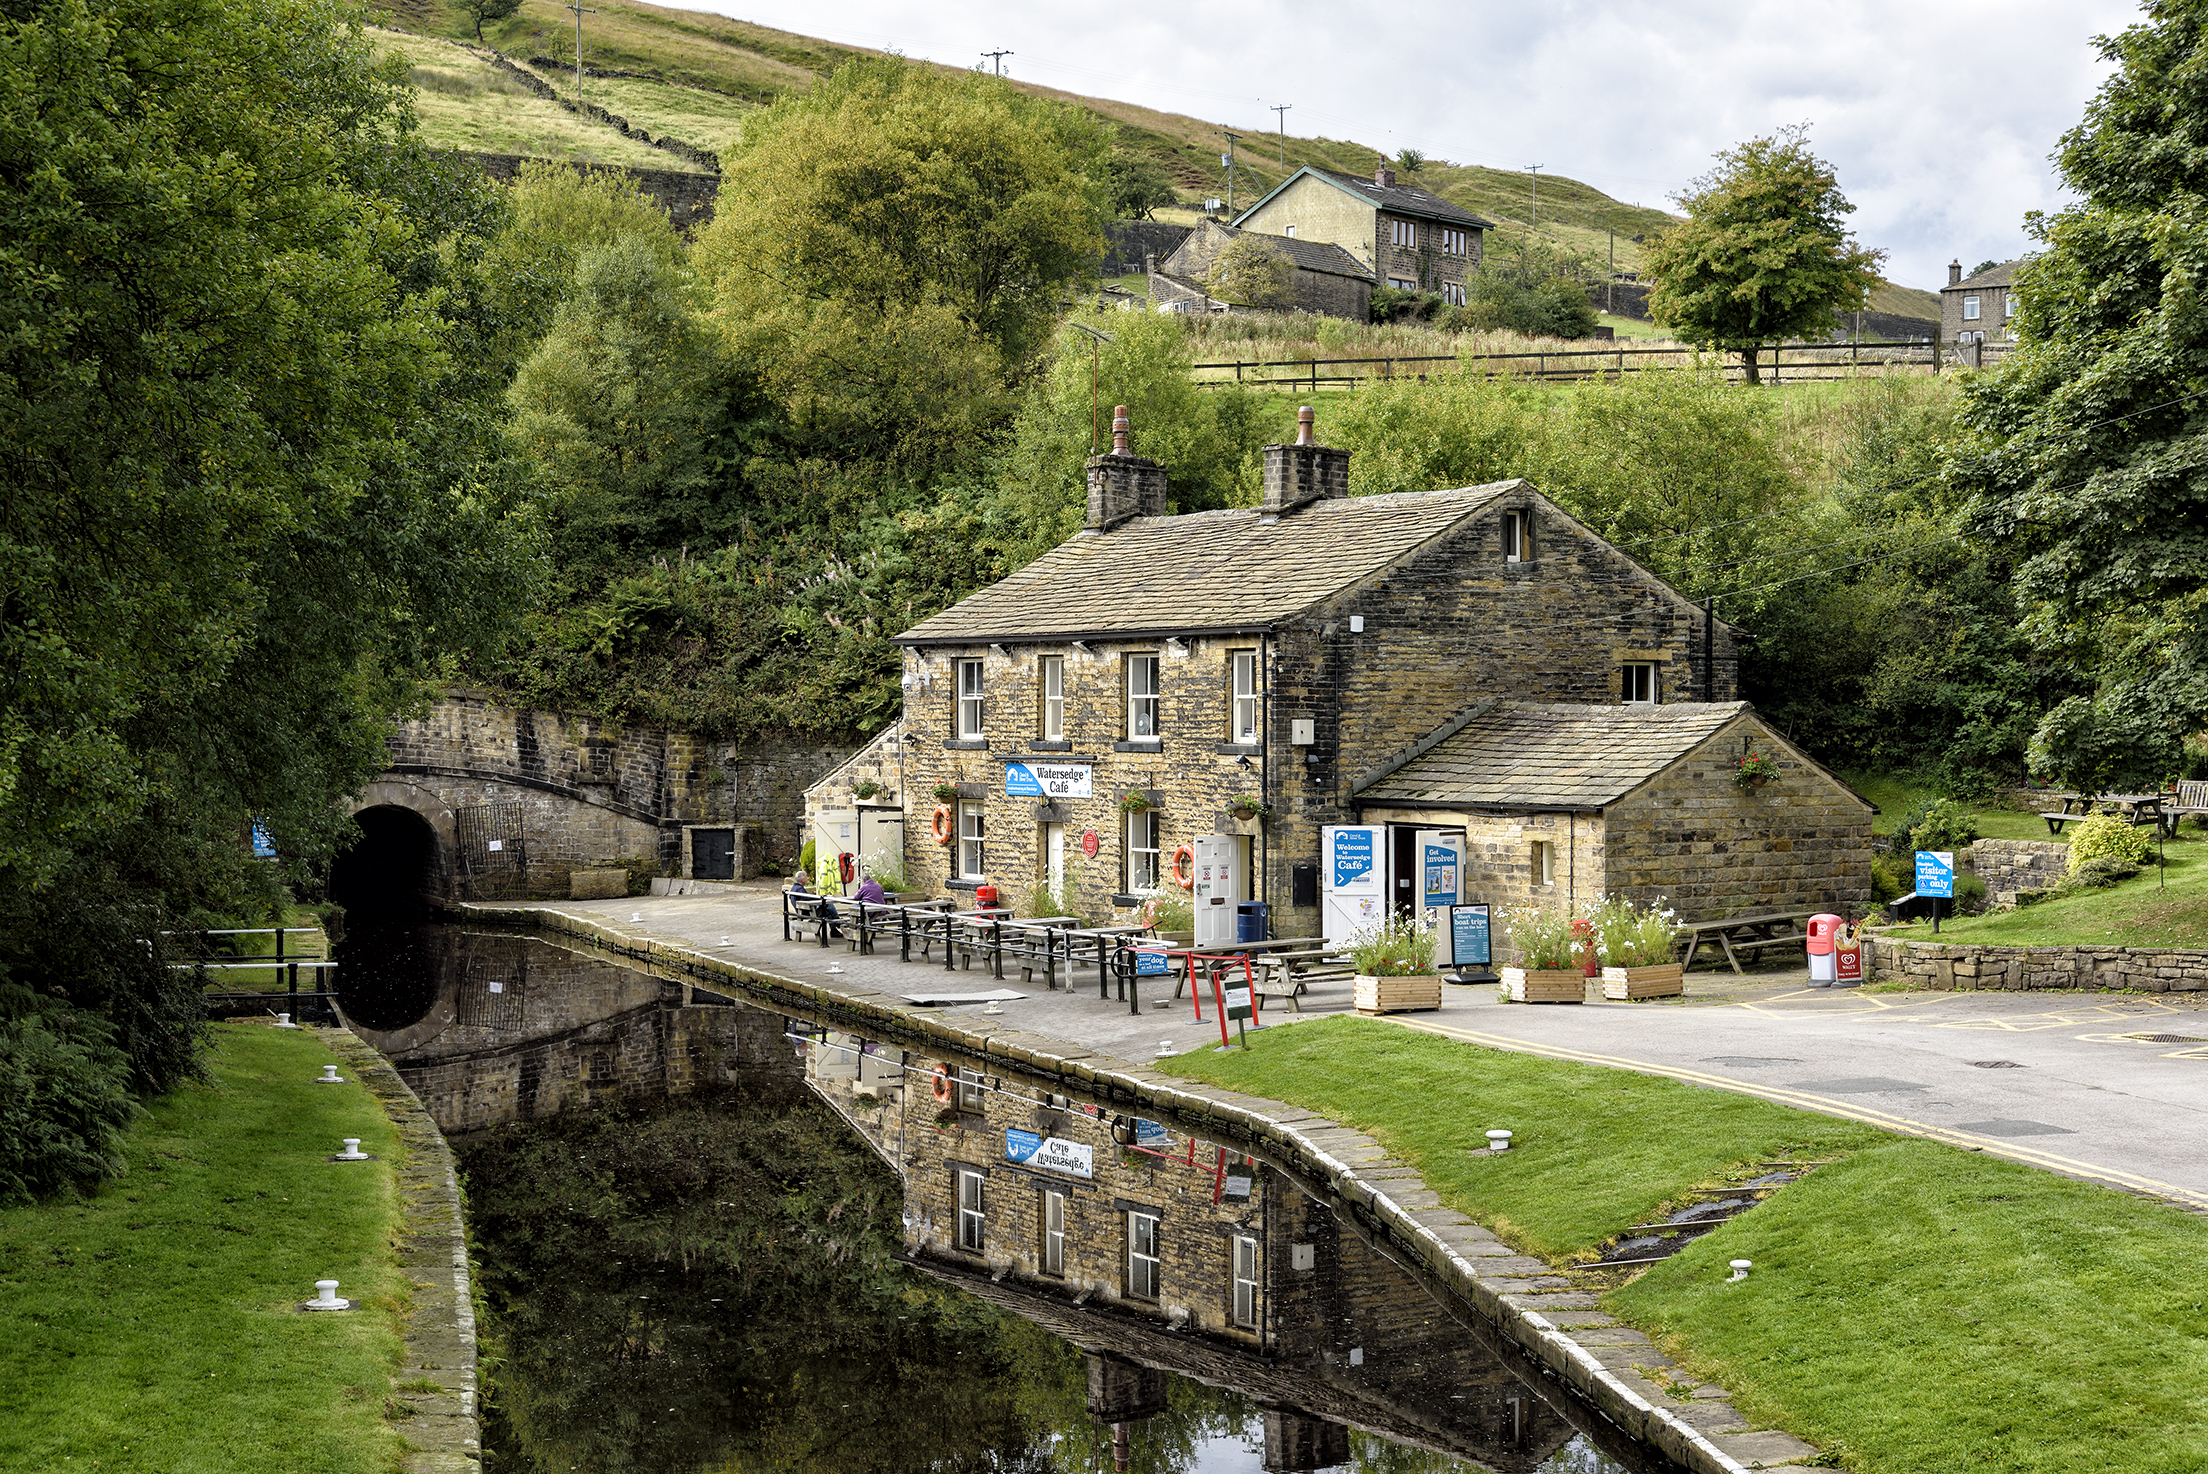 The Standedge Tunnels are four parallel tunnels beneath the Pennines in northern England.